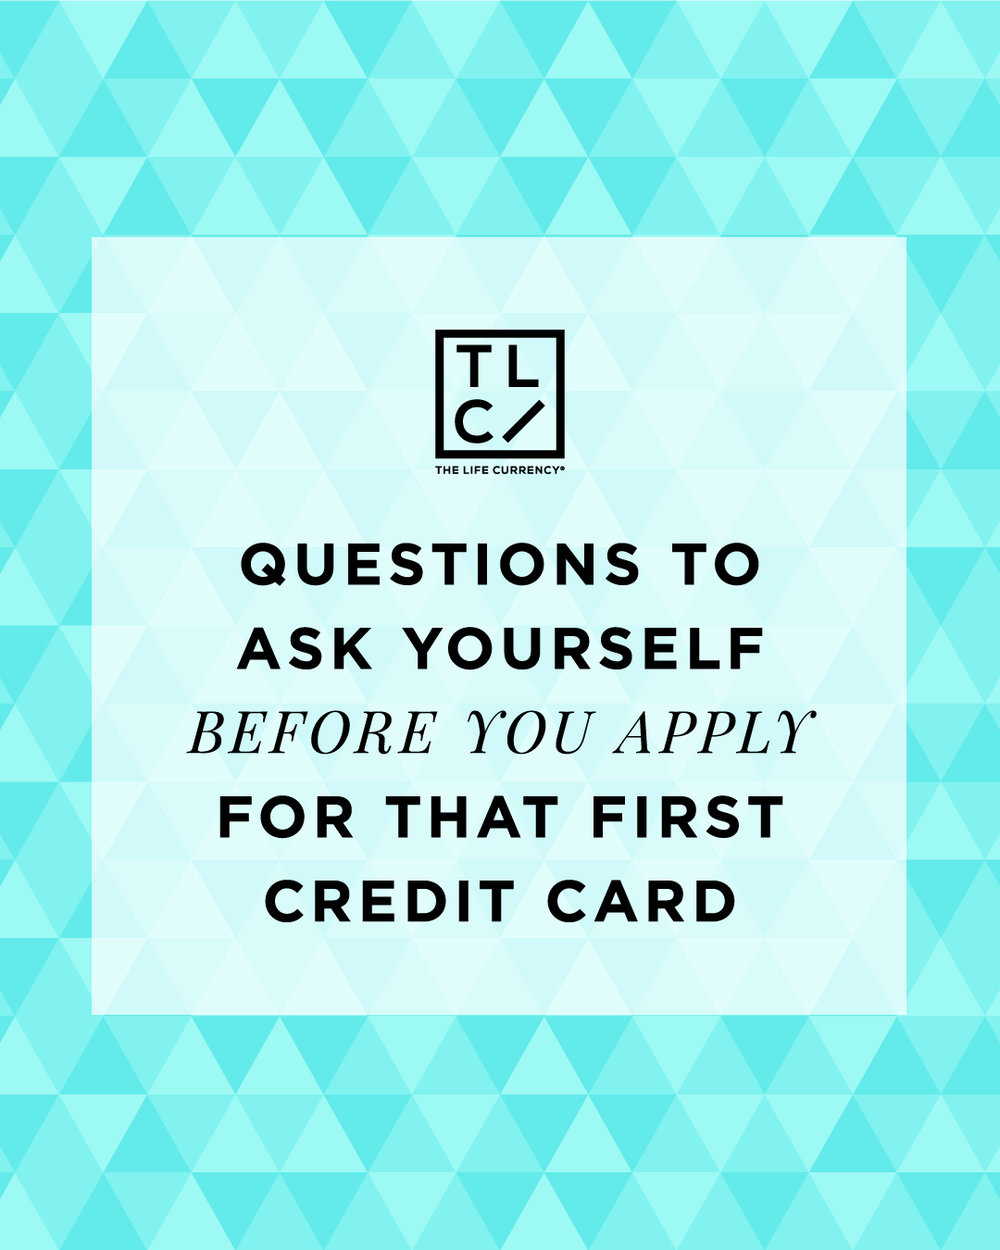 questions-before-credit-card-PIN.jpg